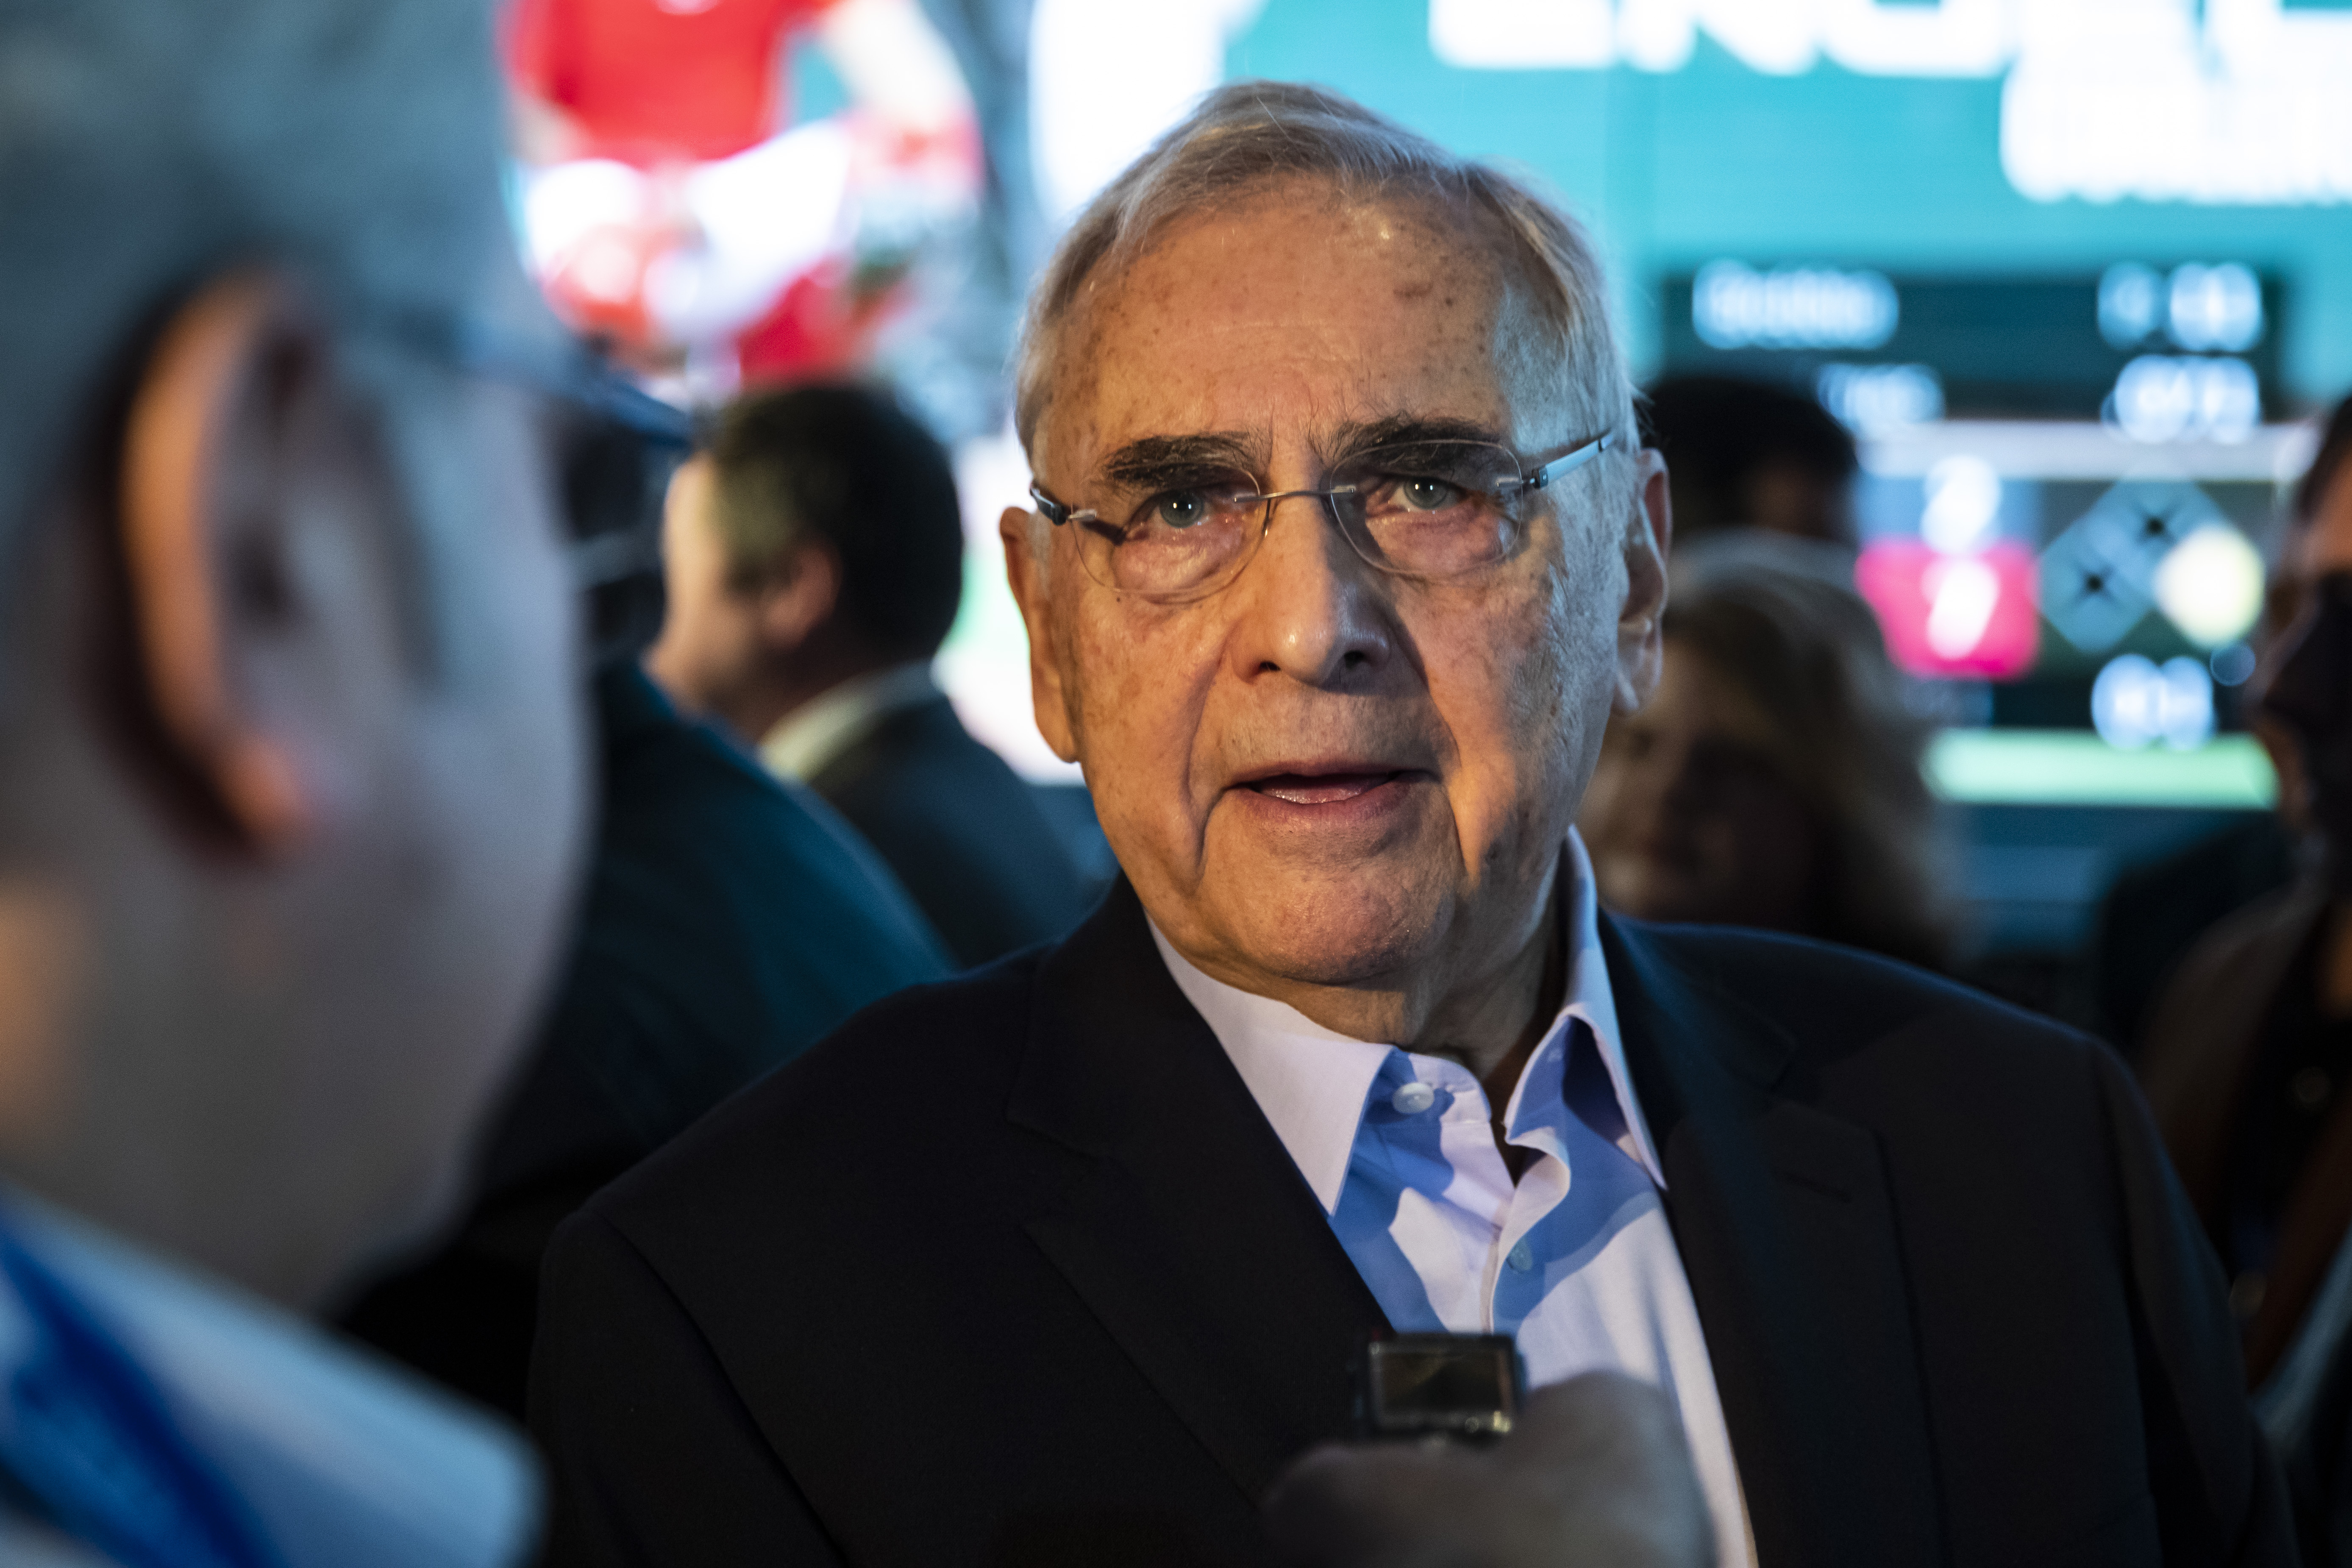 Neil Bluhm, chairman of Rivers Casino, pictured in 2019. Bluhm and partners at Churchill Downs withdrew their proposal for a Waukegan casino shortly after the company announced the sale of Arlington Park to the Bears.